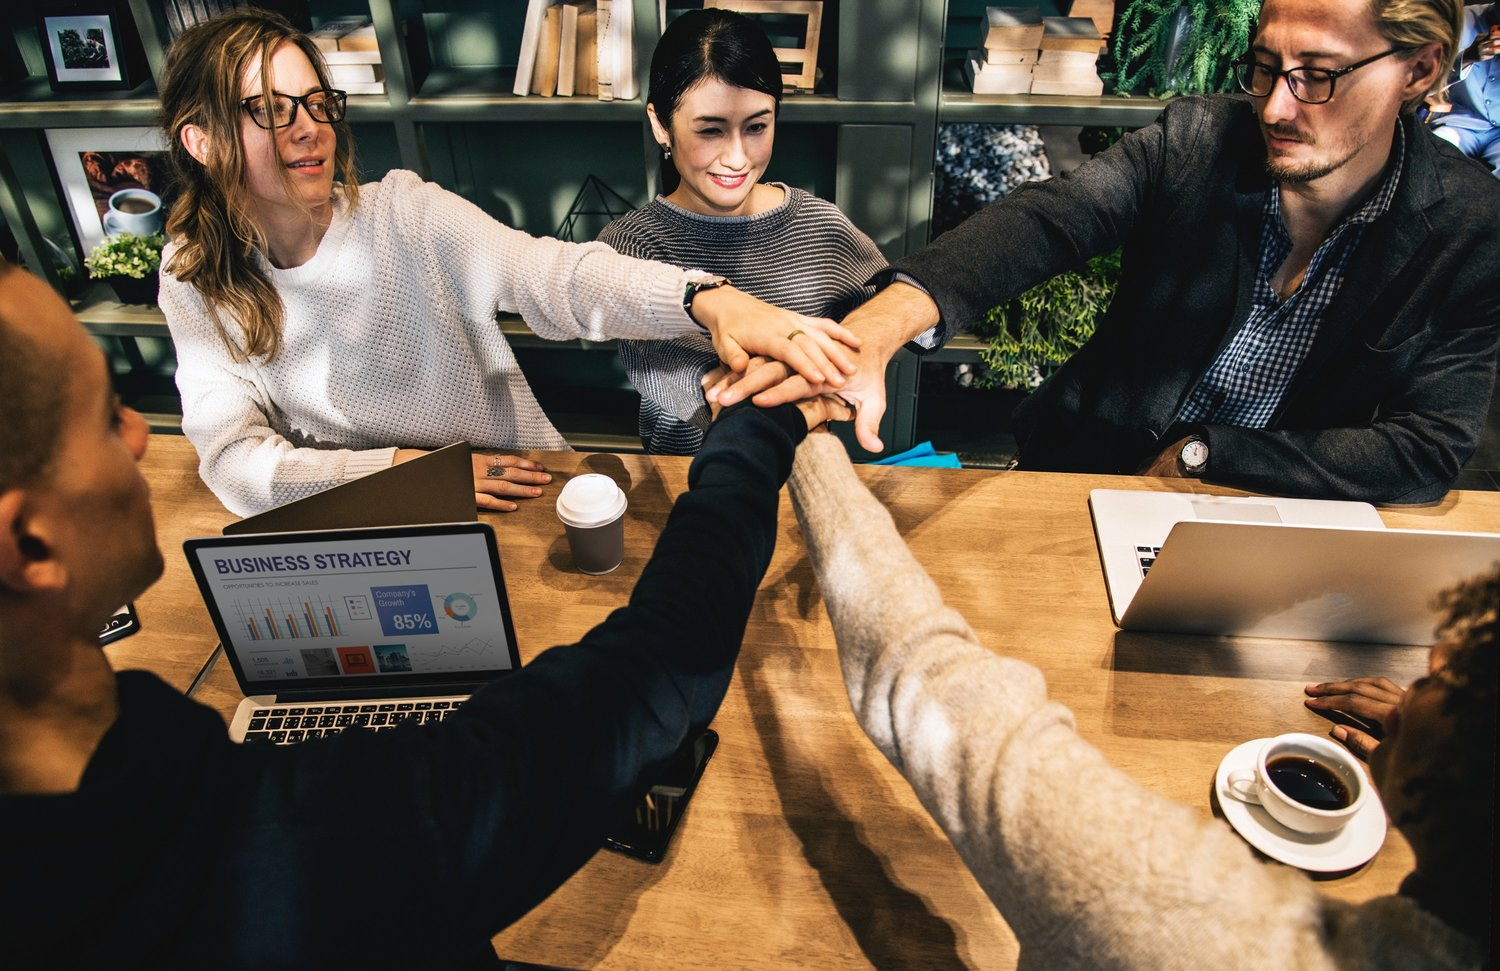 3 Things You Need to Know to Attract and Retain Your Employees